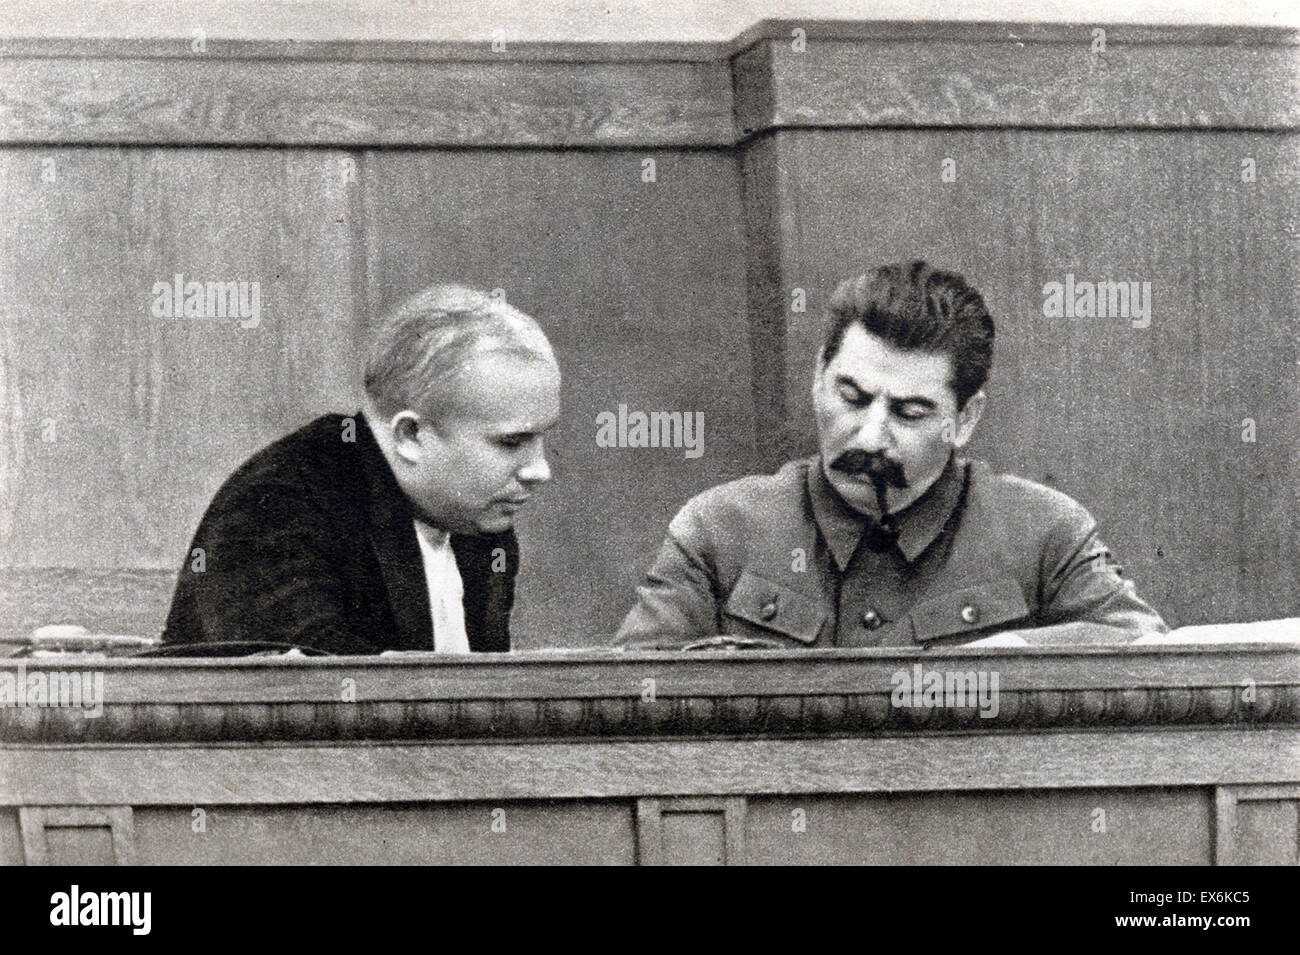 Nikita Khrushchev and Josef Stalin, of Russia 1936 - Stock Image